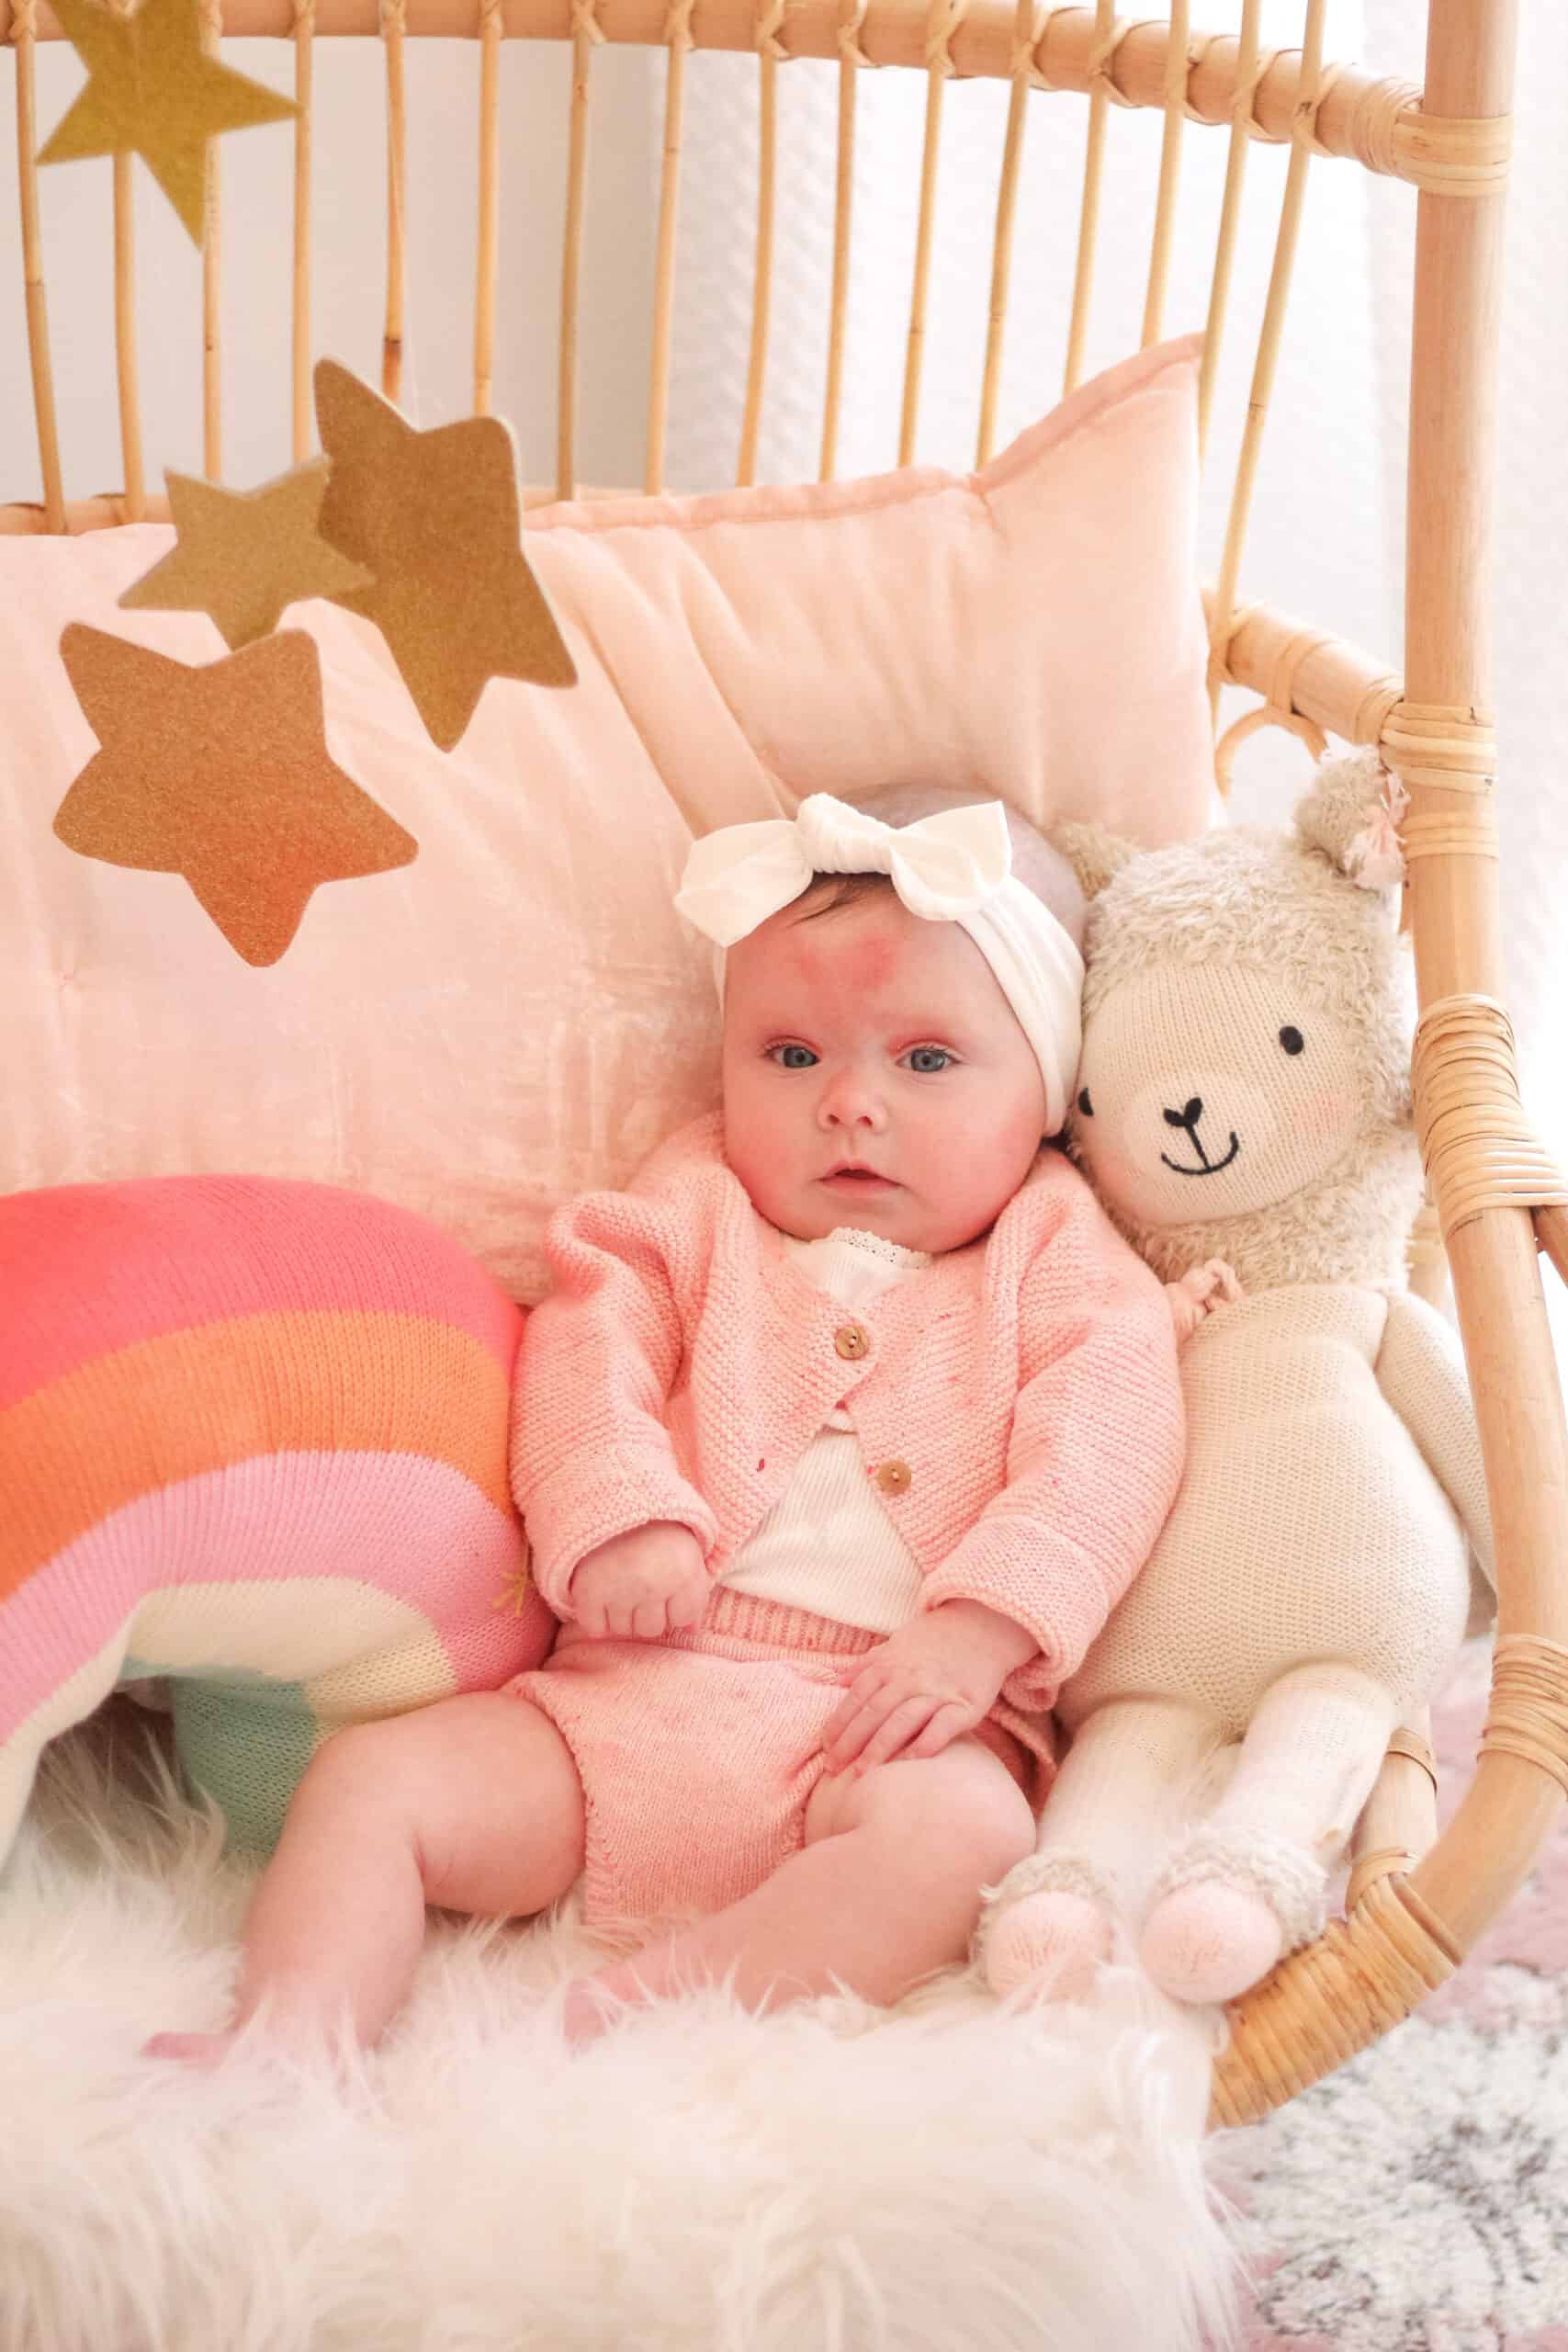 5 month old baby girl in Serena and lily chair